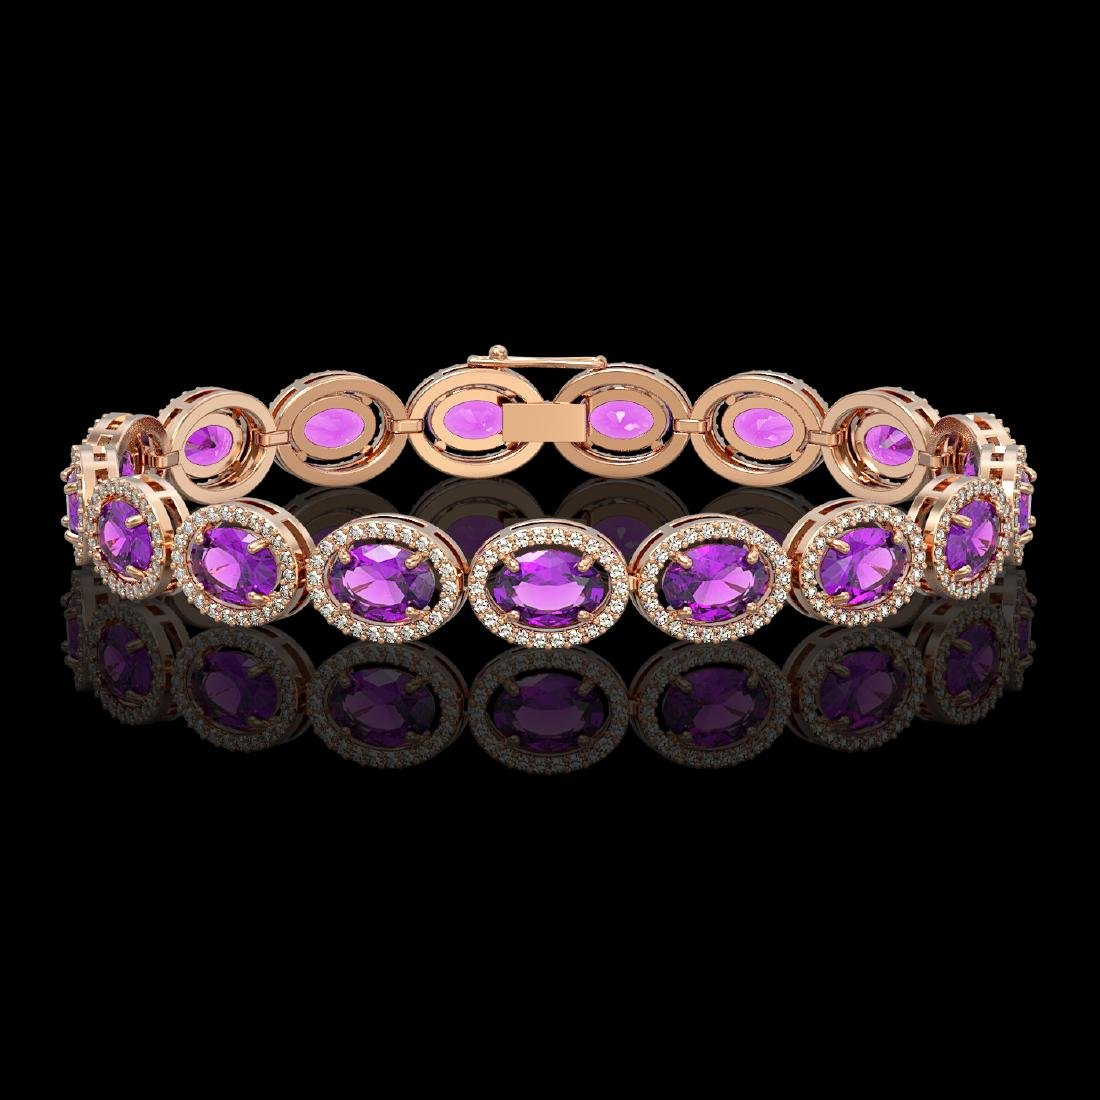 19.82 CTW Amethyst & Diamond Halo Bracelet 10K Rose